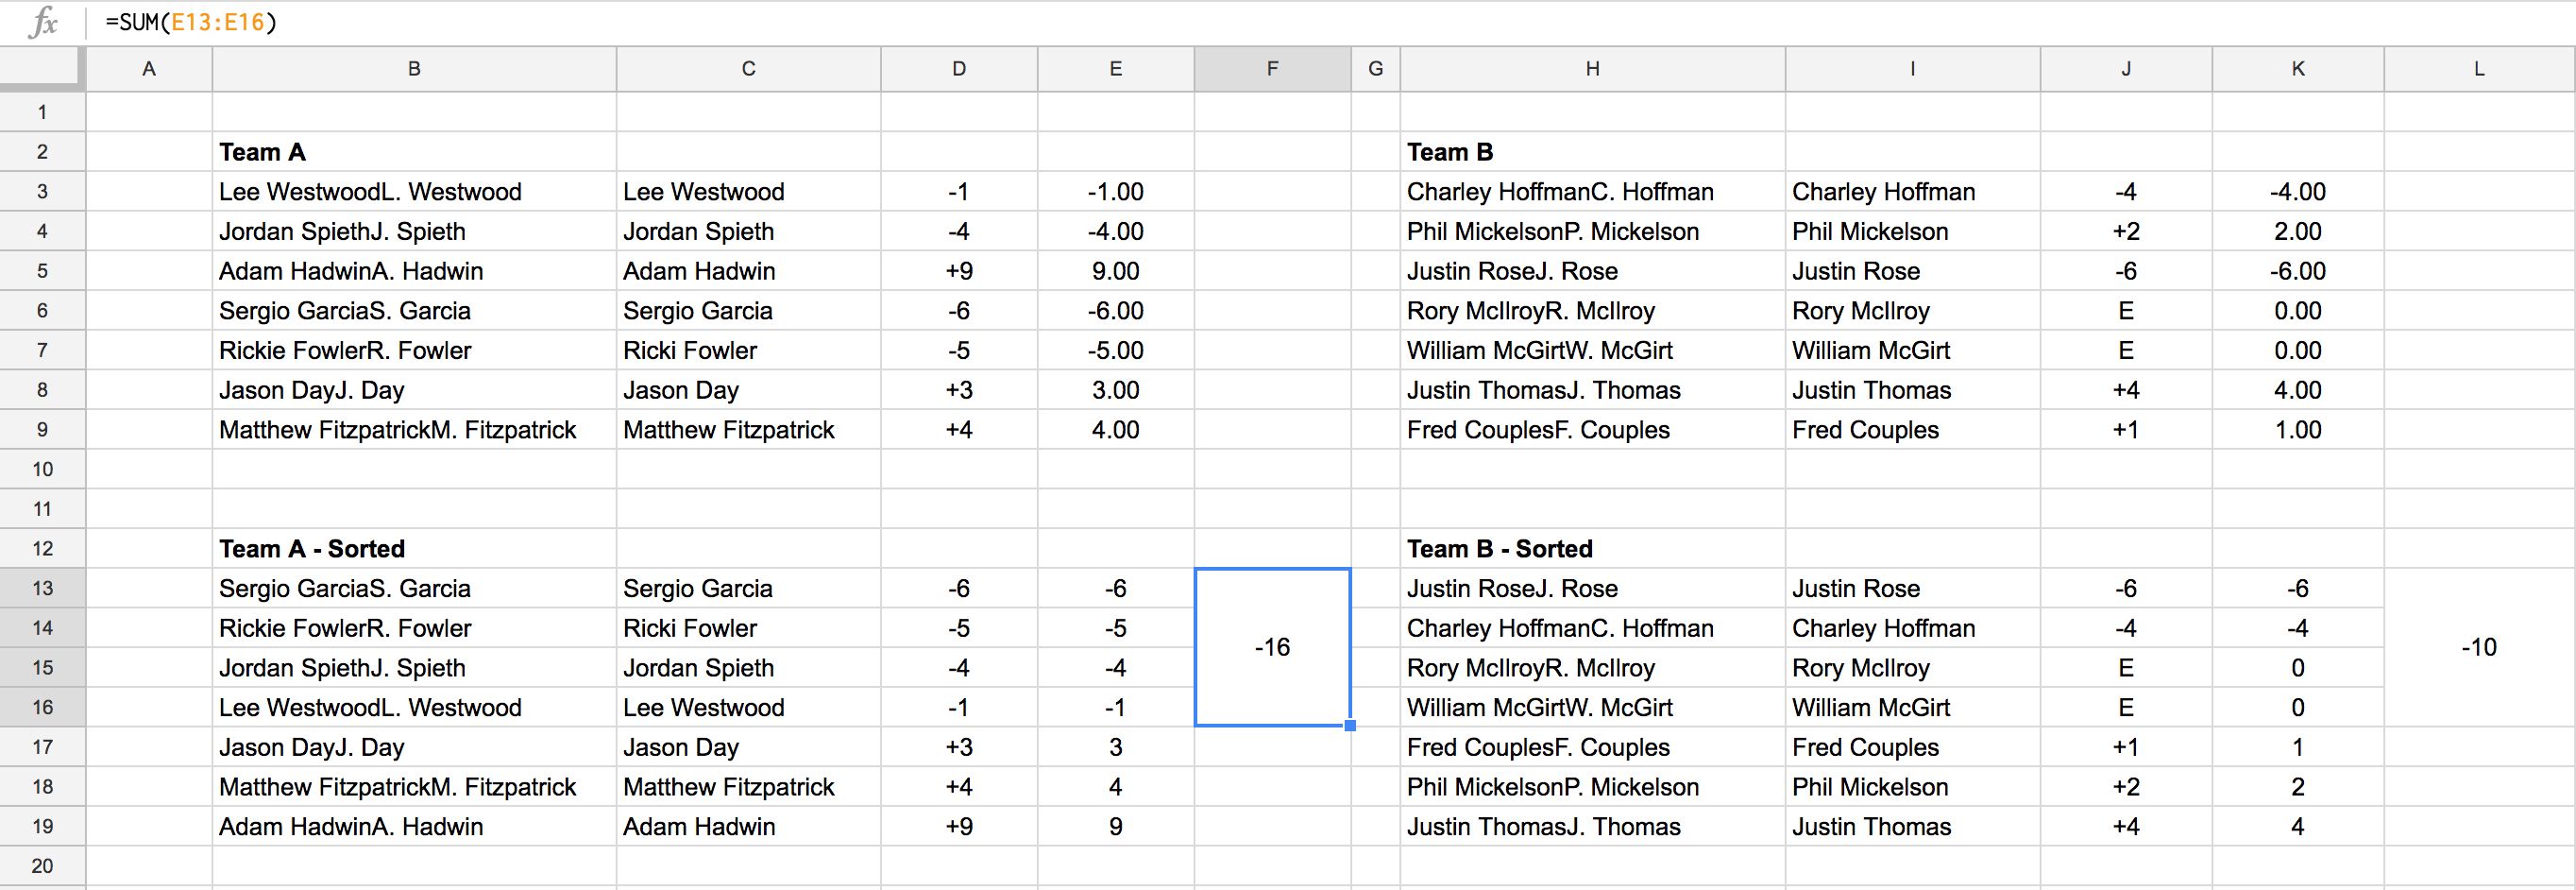 How to run an automated sports pool in a spreadsheet